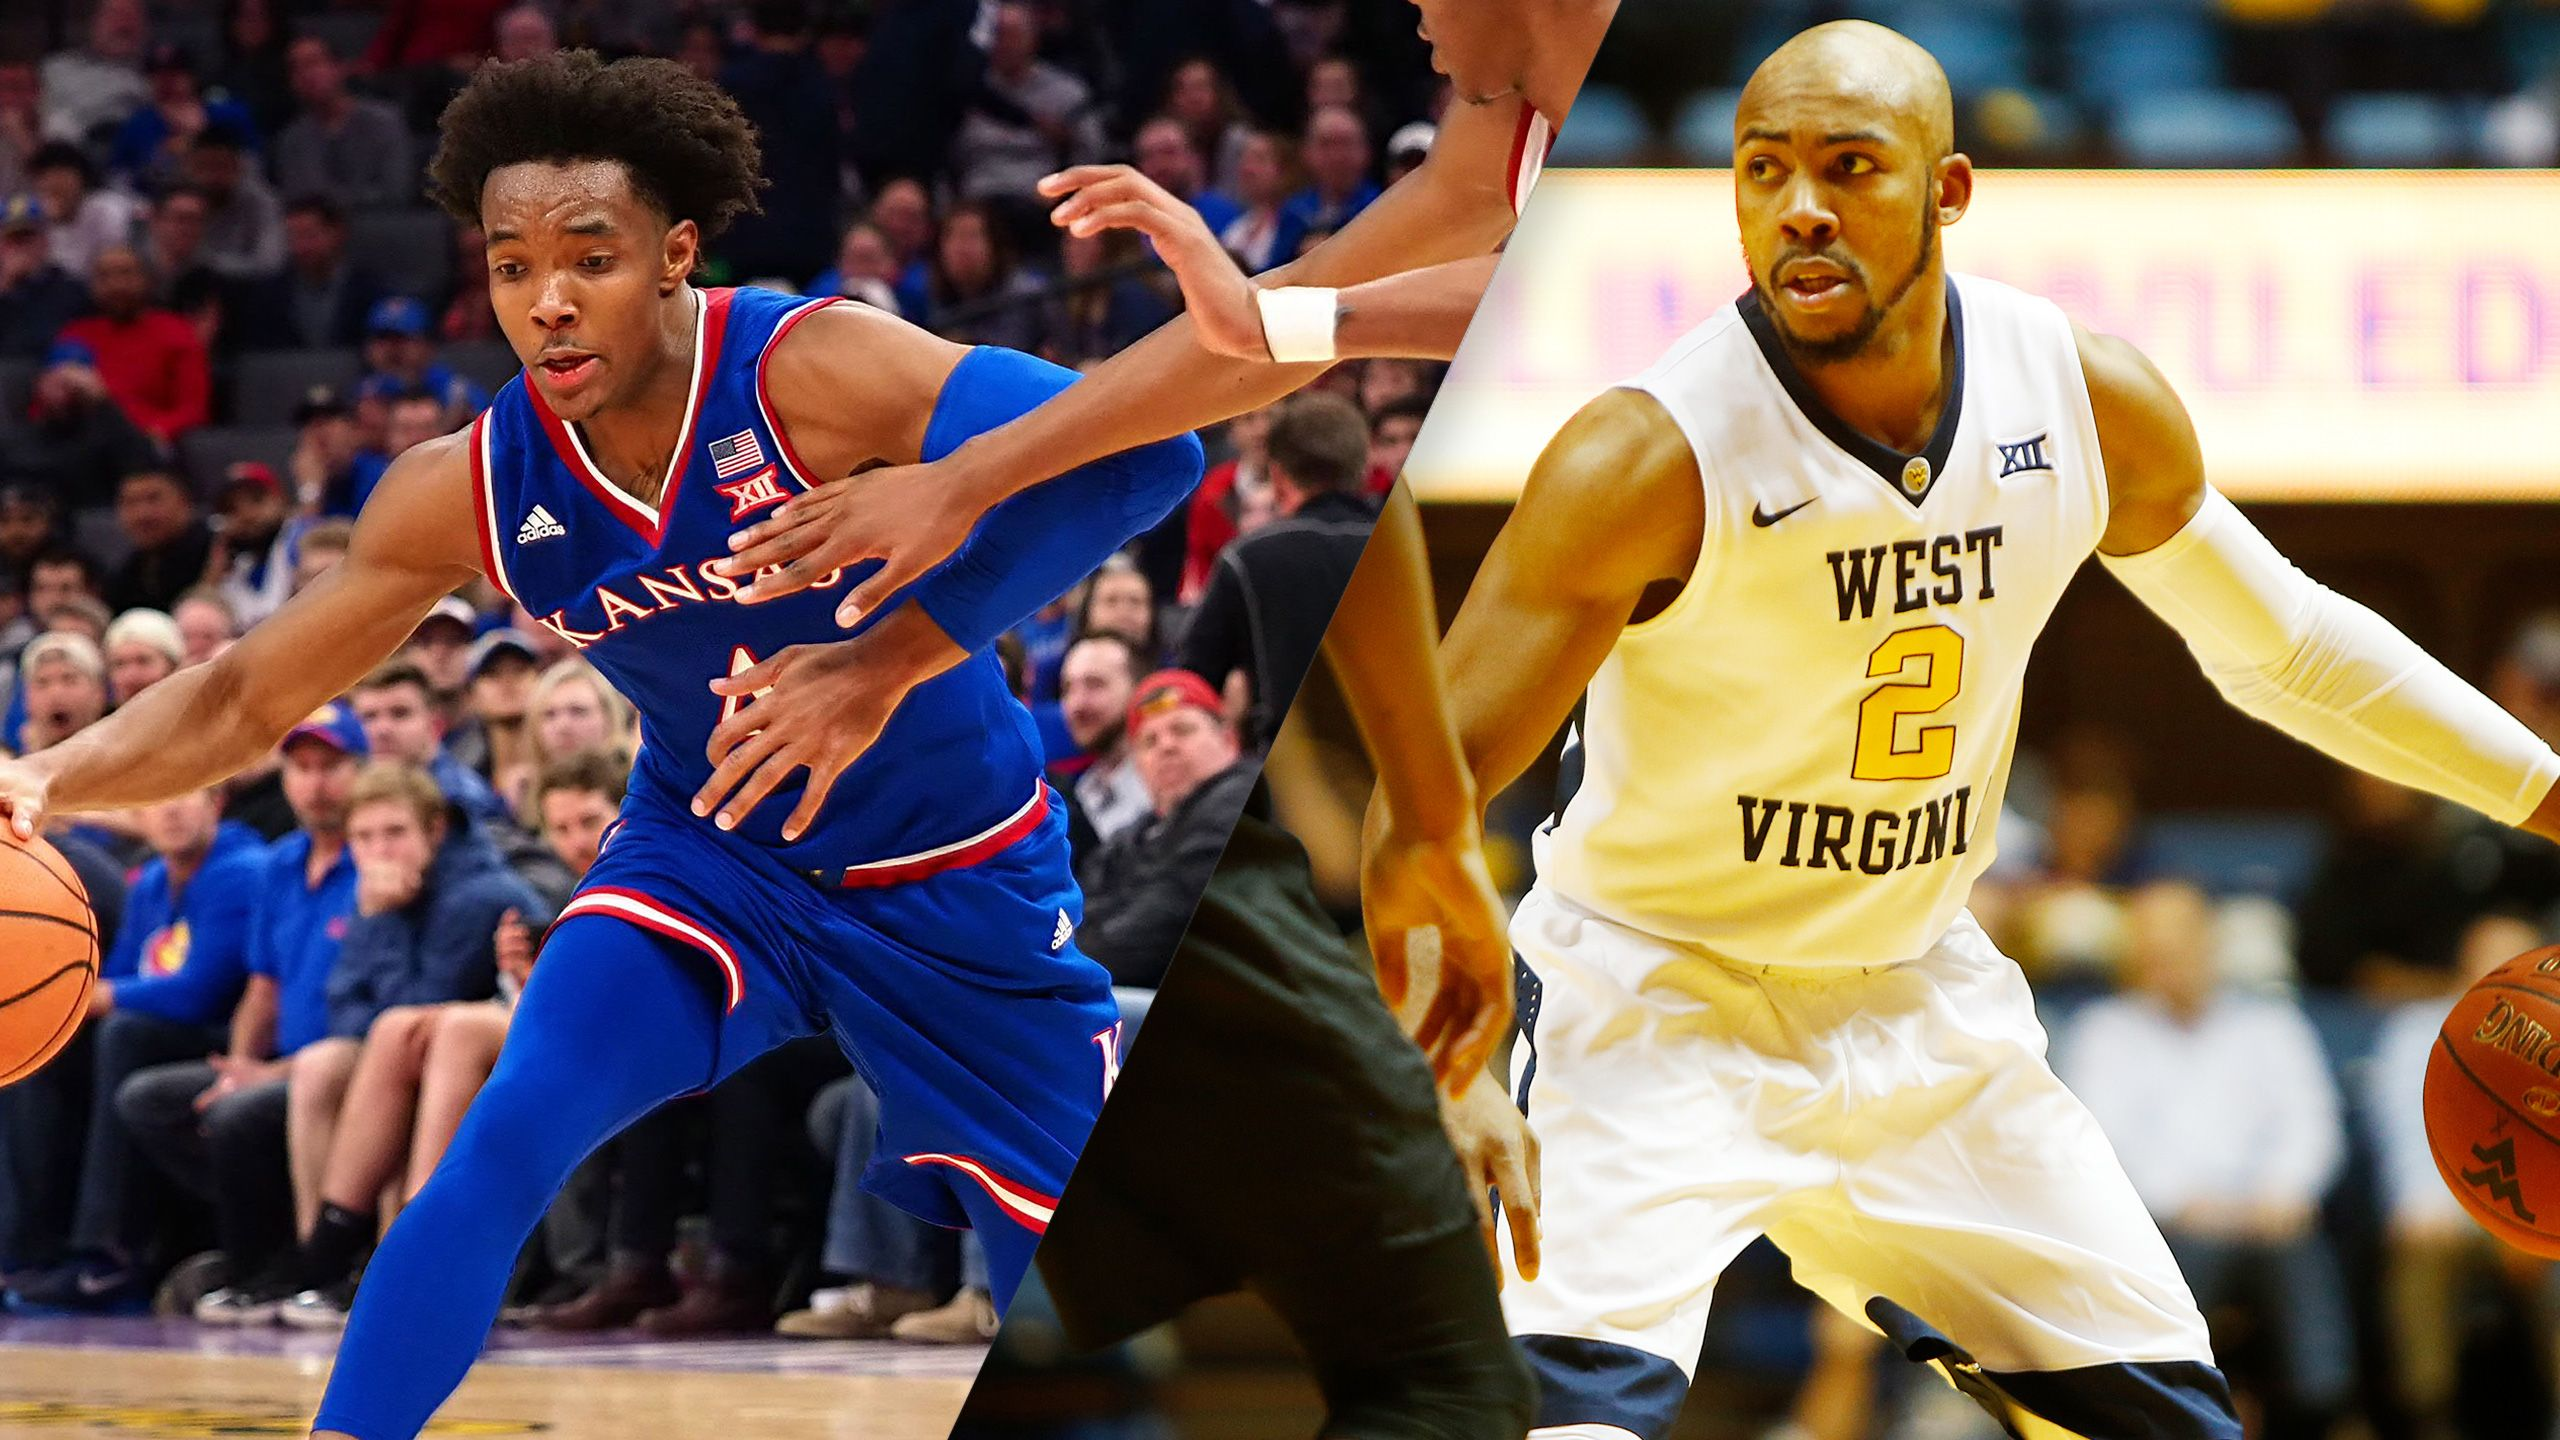 #10 Kansas vs. #6 West Virginia (M Basketball) (re-air)